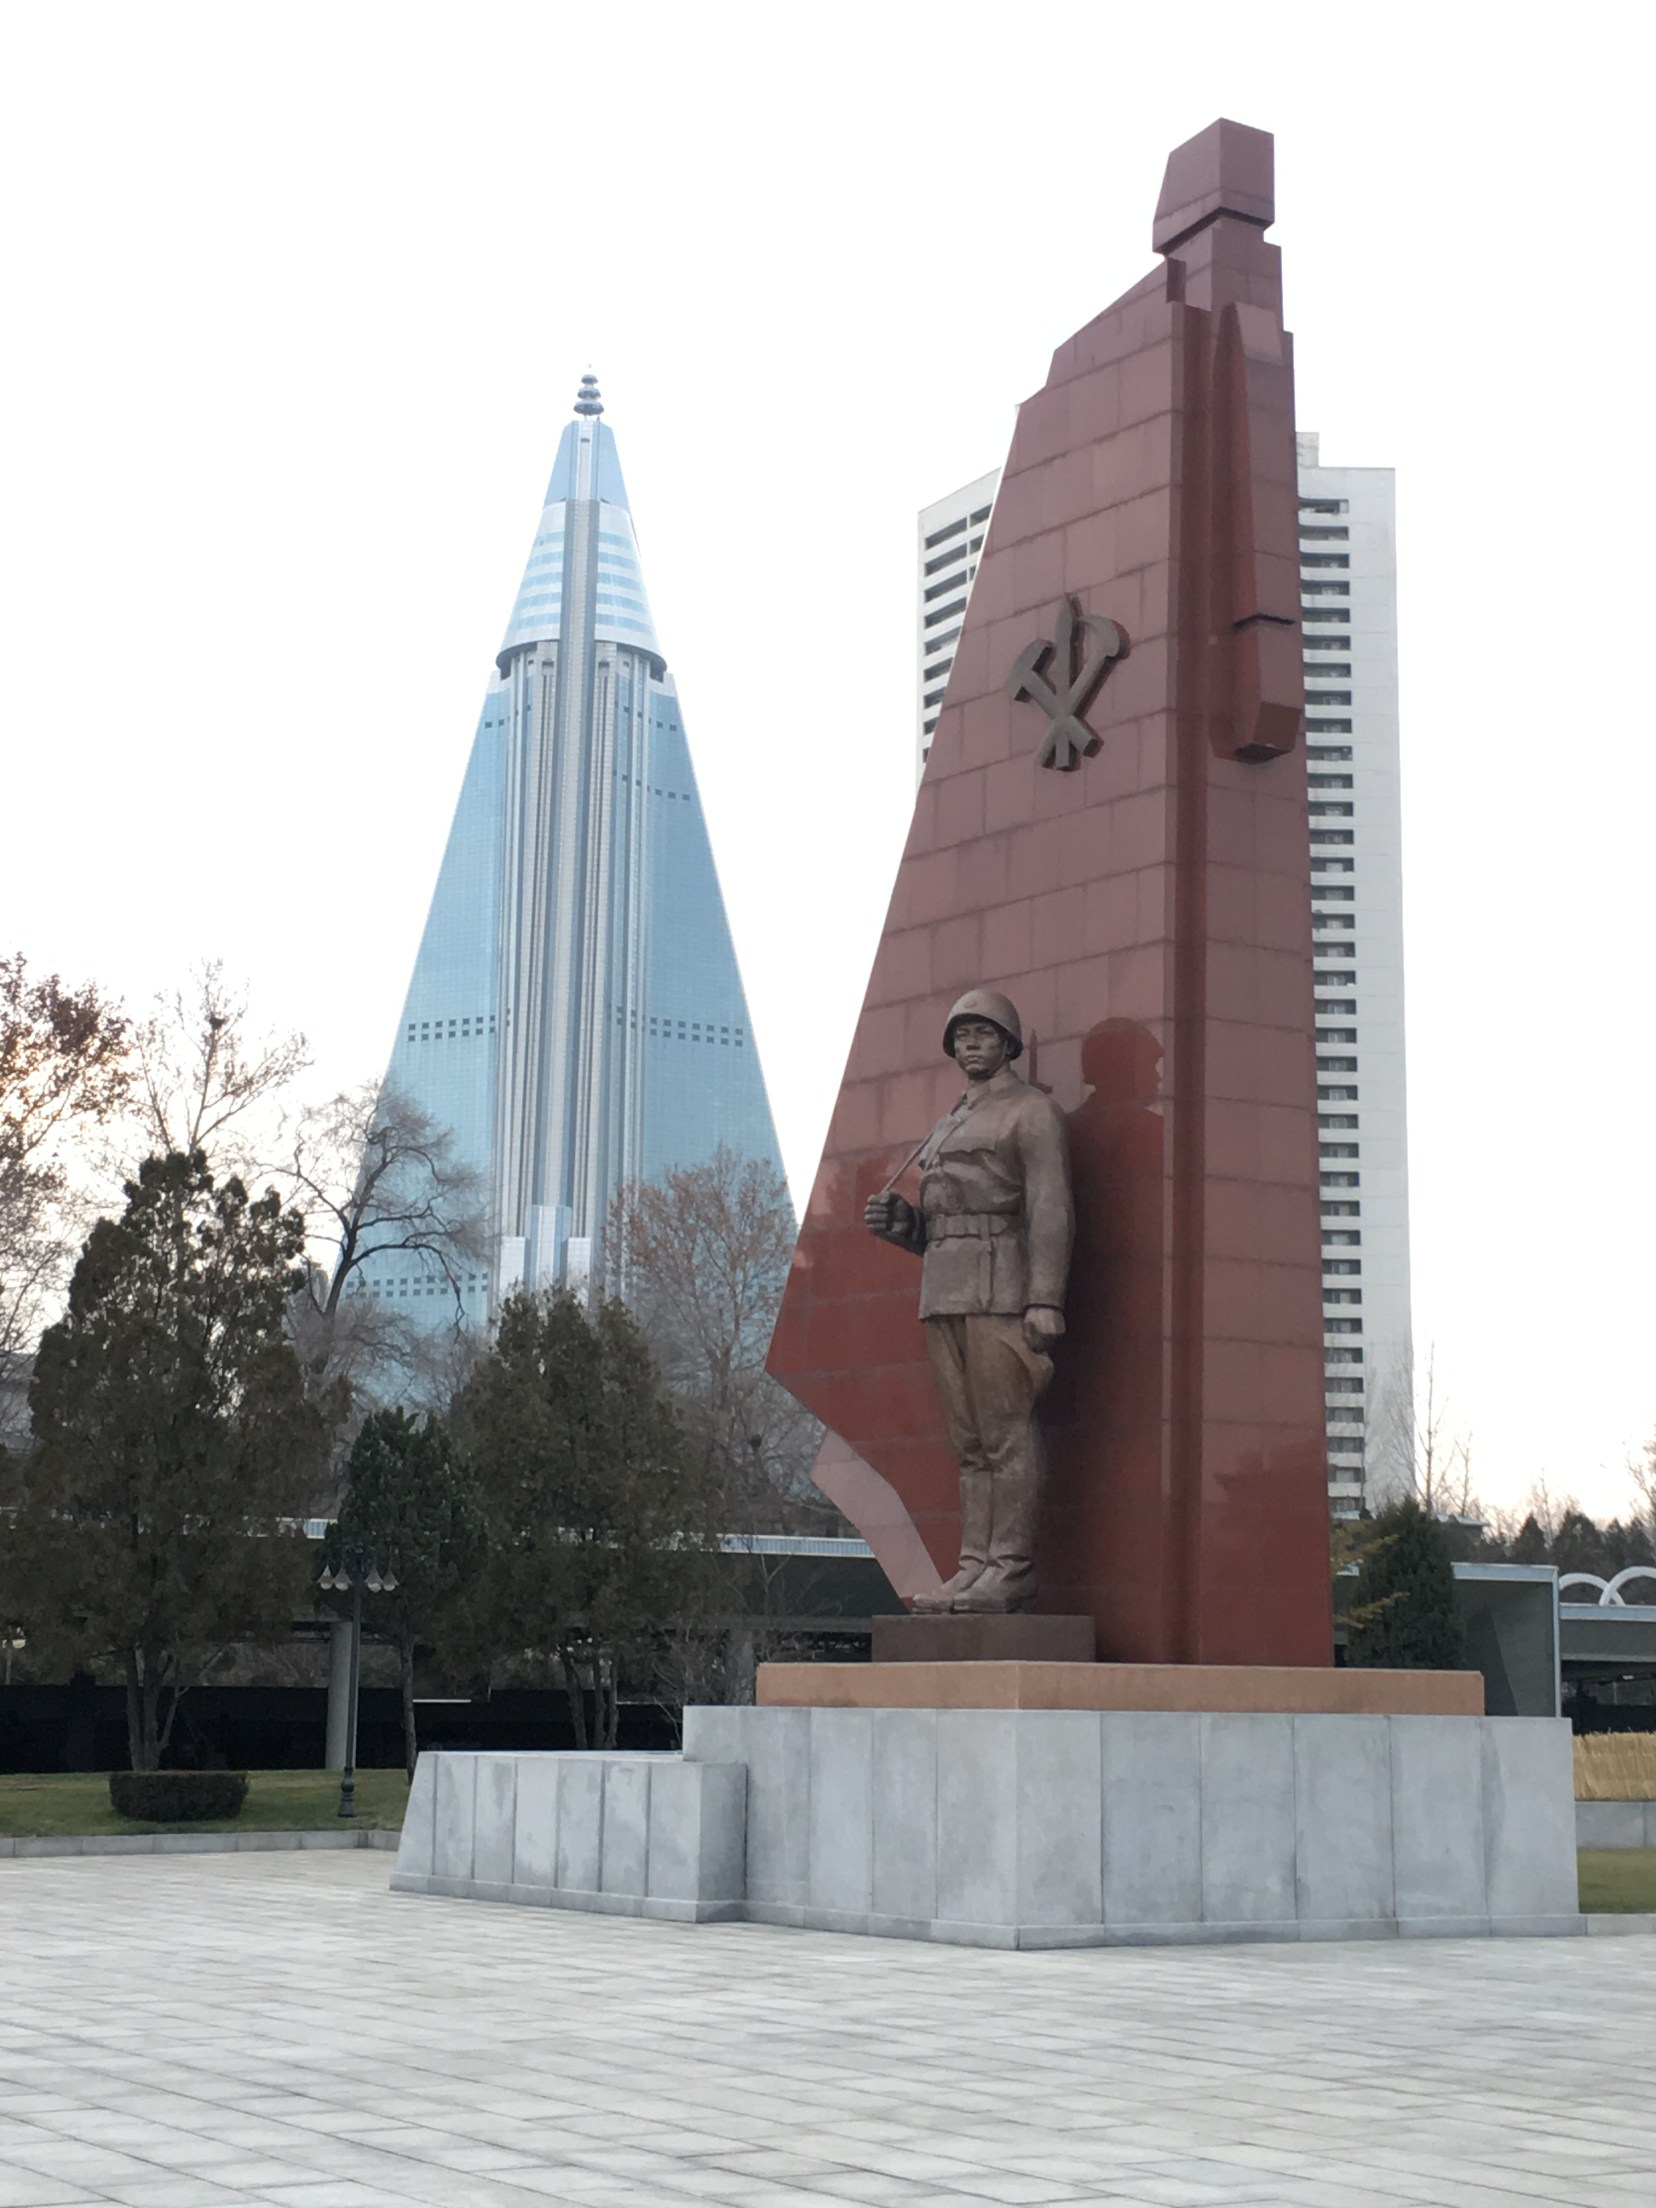 The unfinished Ryugyong Hotel in the background